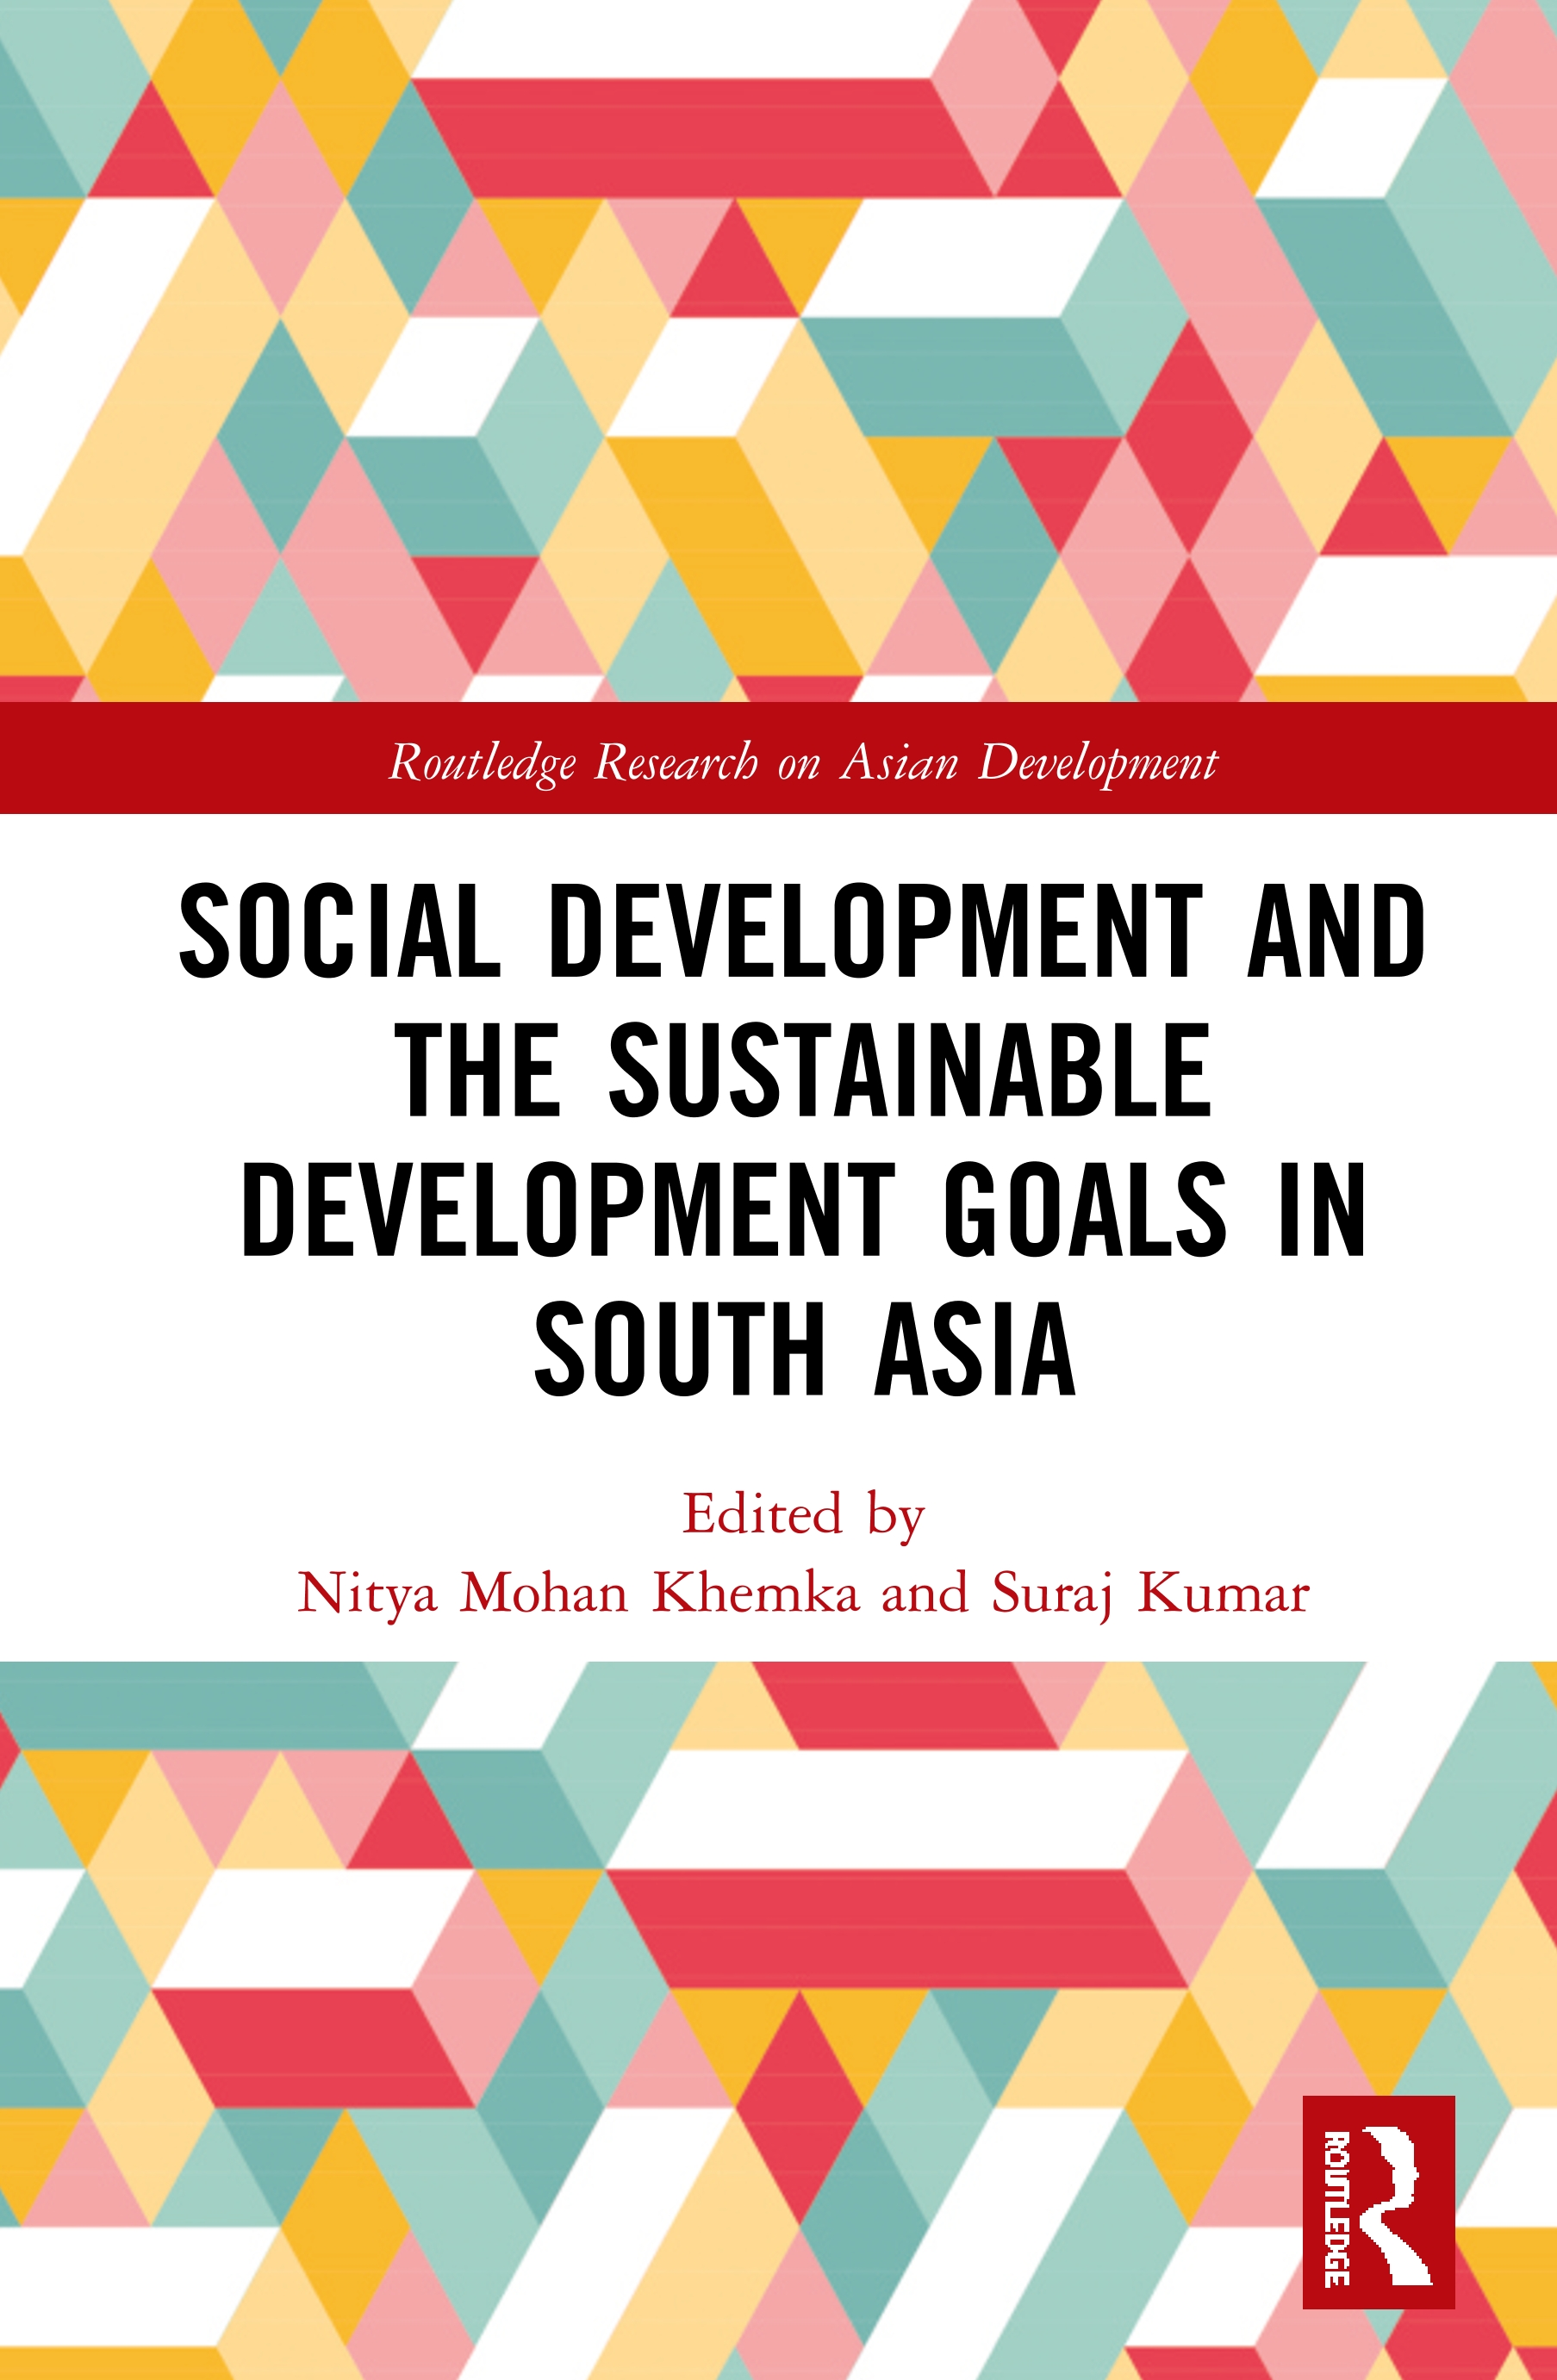 Social Development and the Sustainable Development Goals in South Asia book cover